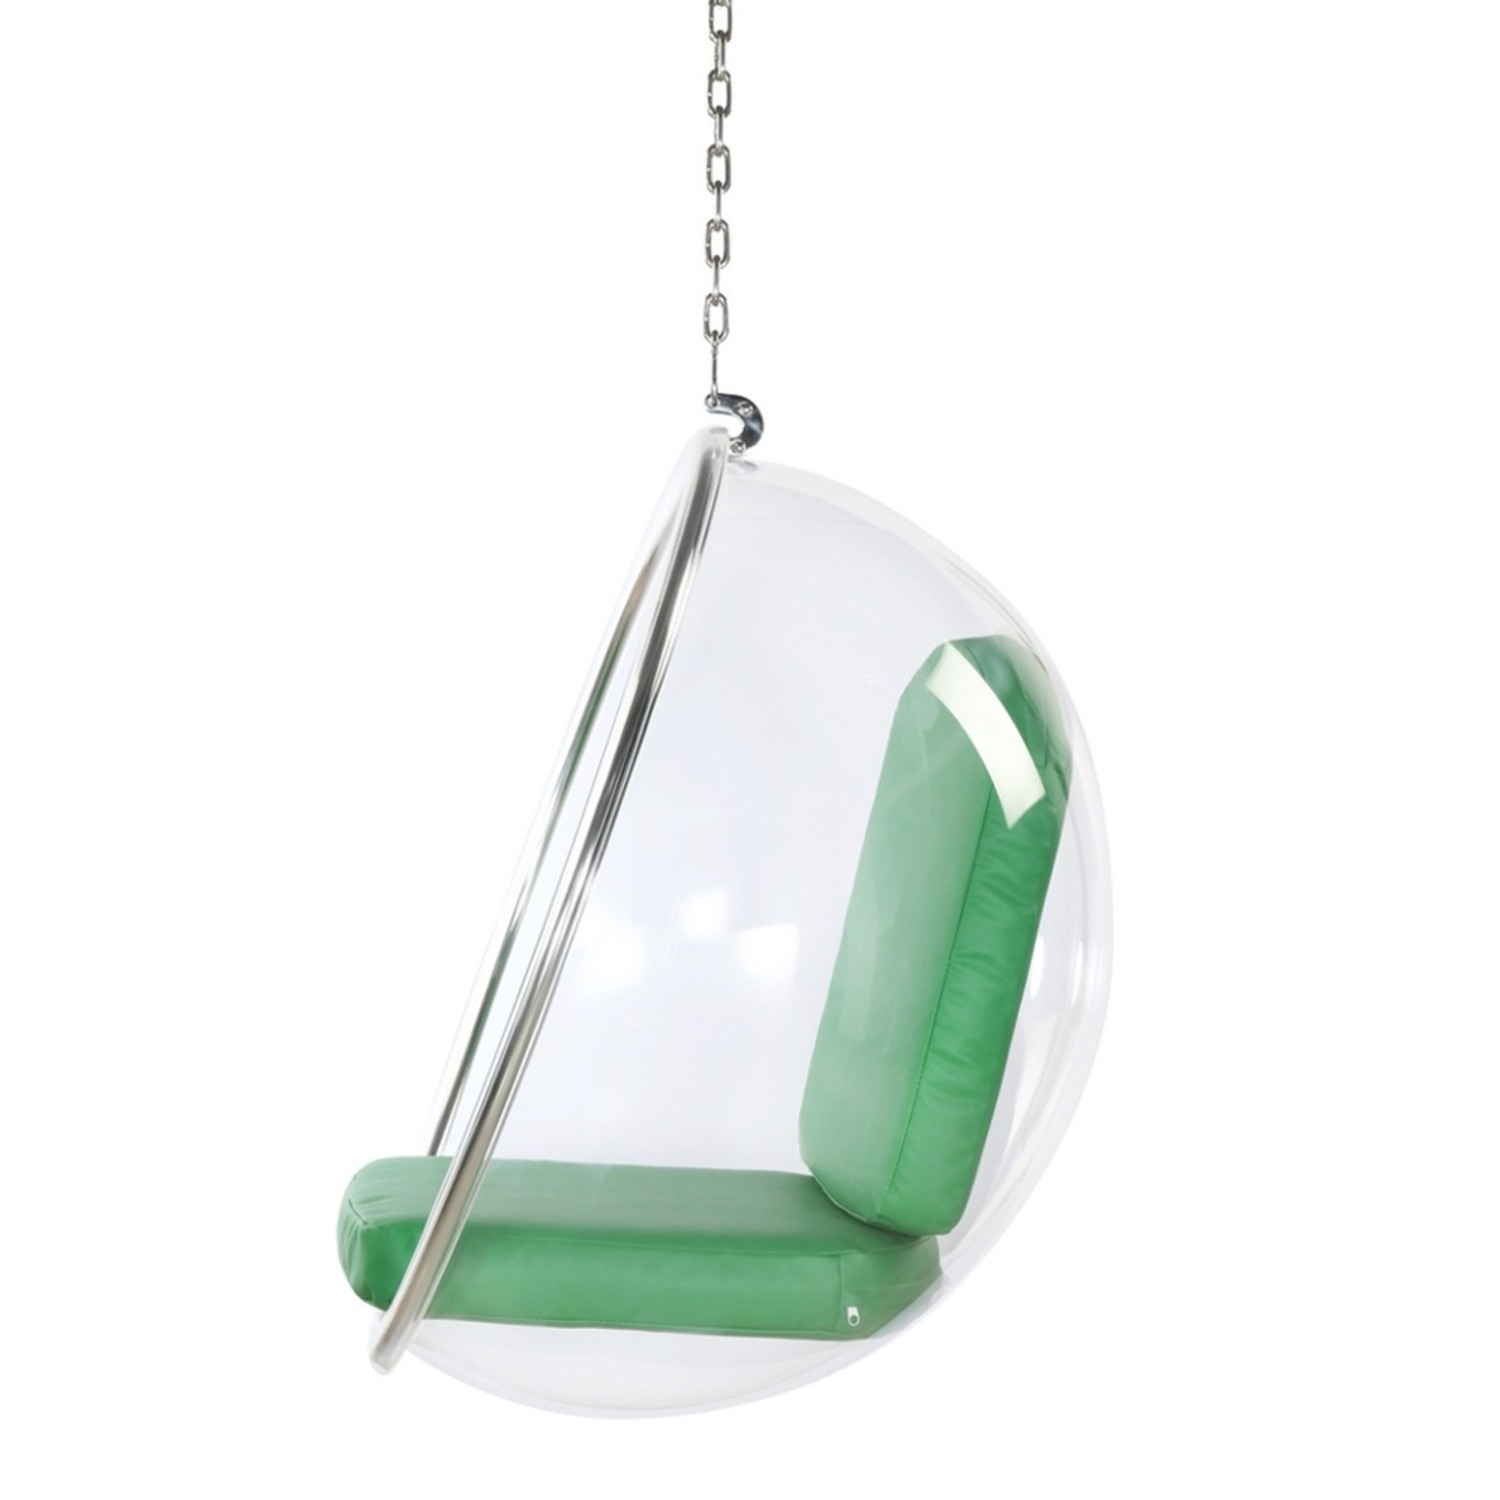 Hanging Chair In Clear Acrylic & Green PU Leather - image-3